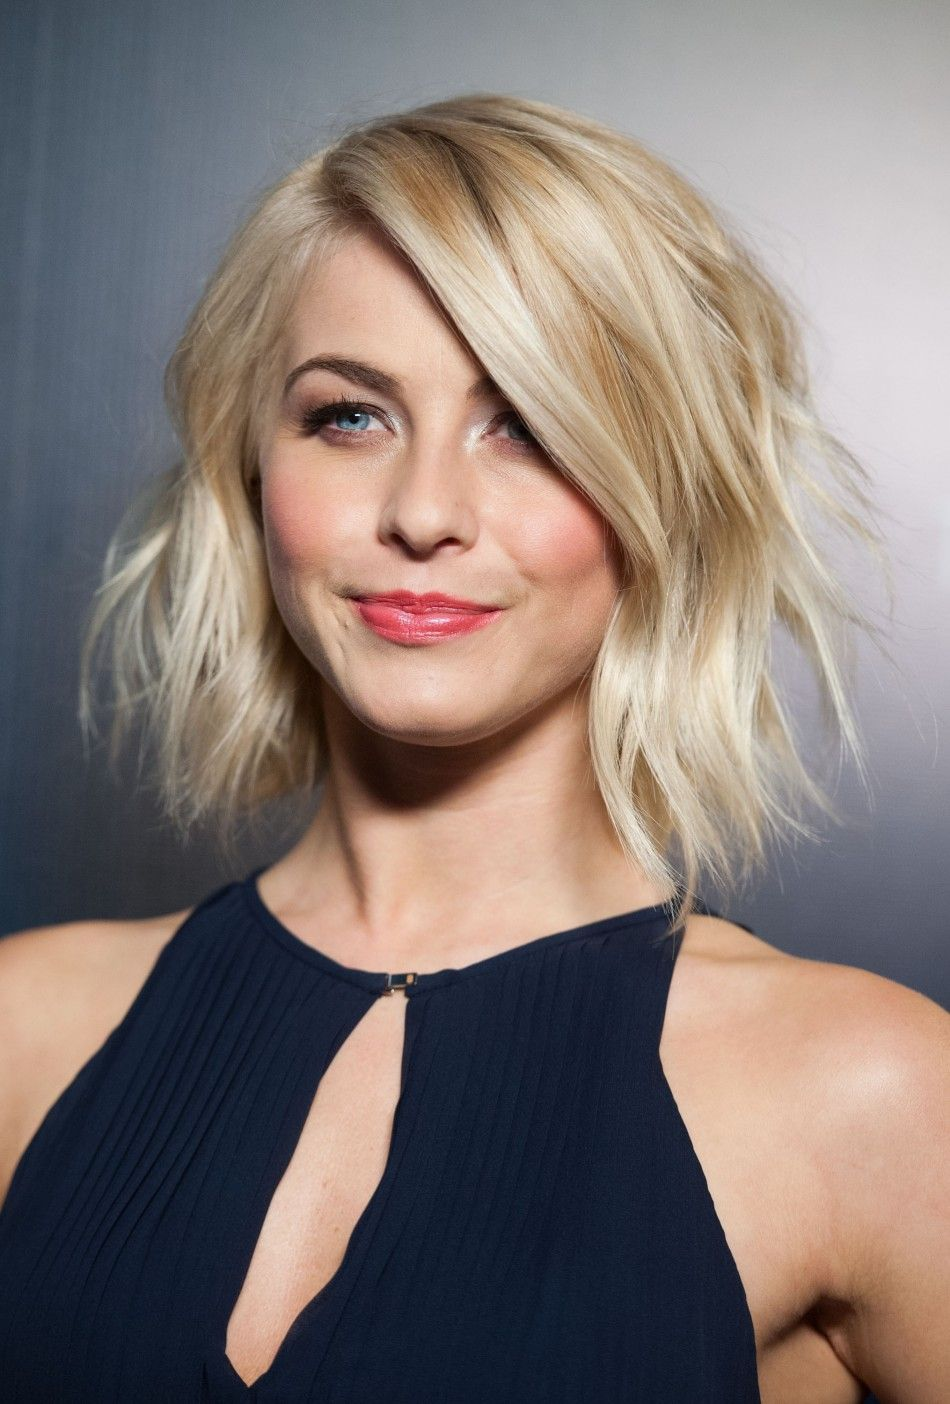 Julianne Hough Hot Julianne Hough Haircut Sexy And Single After